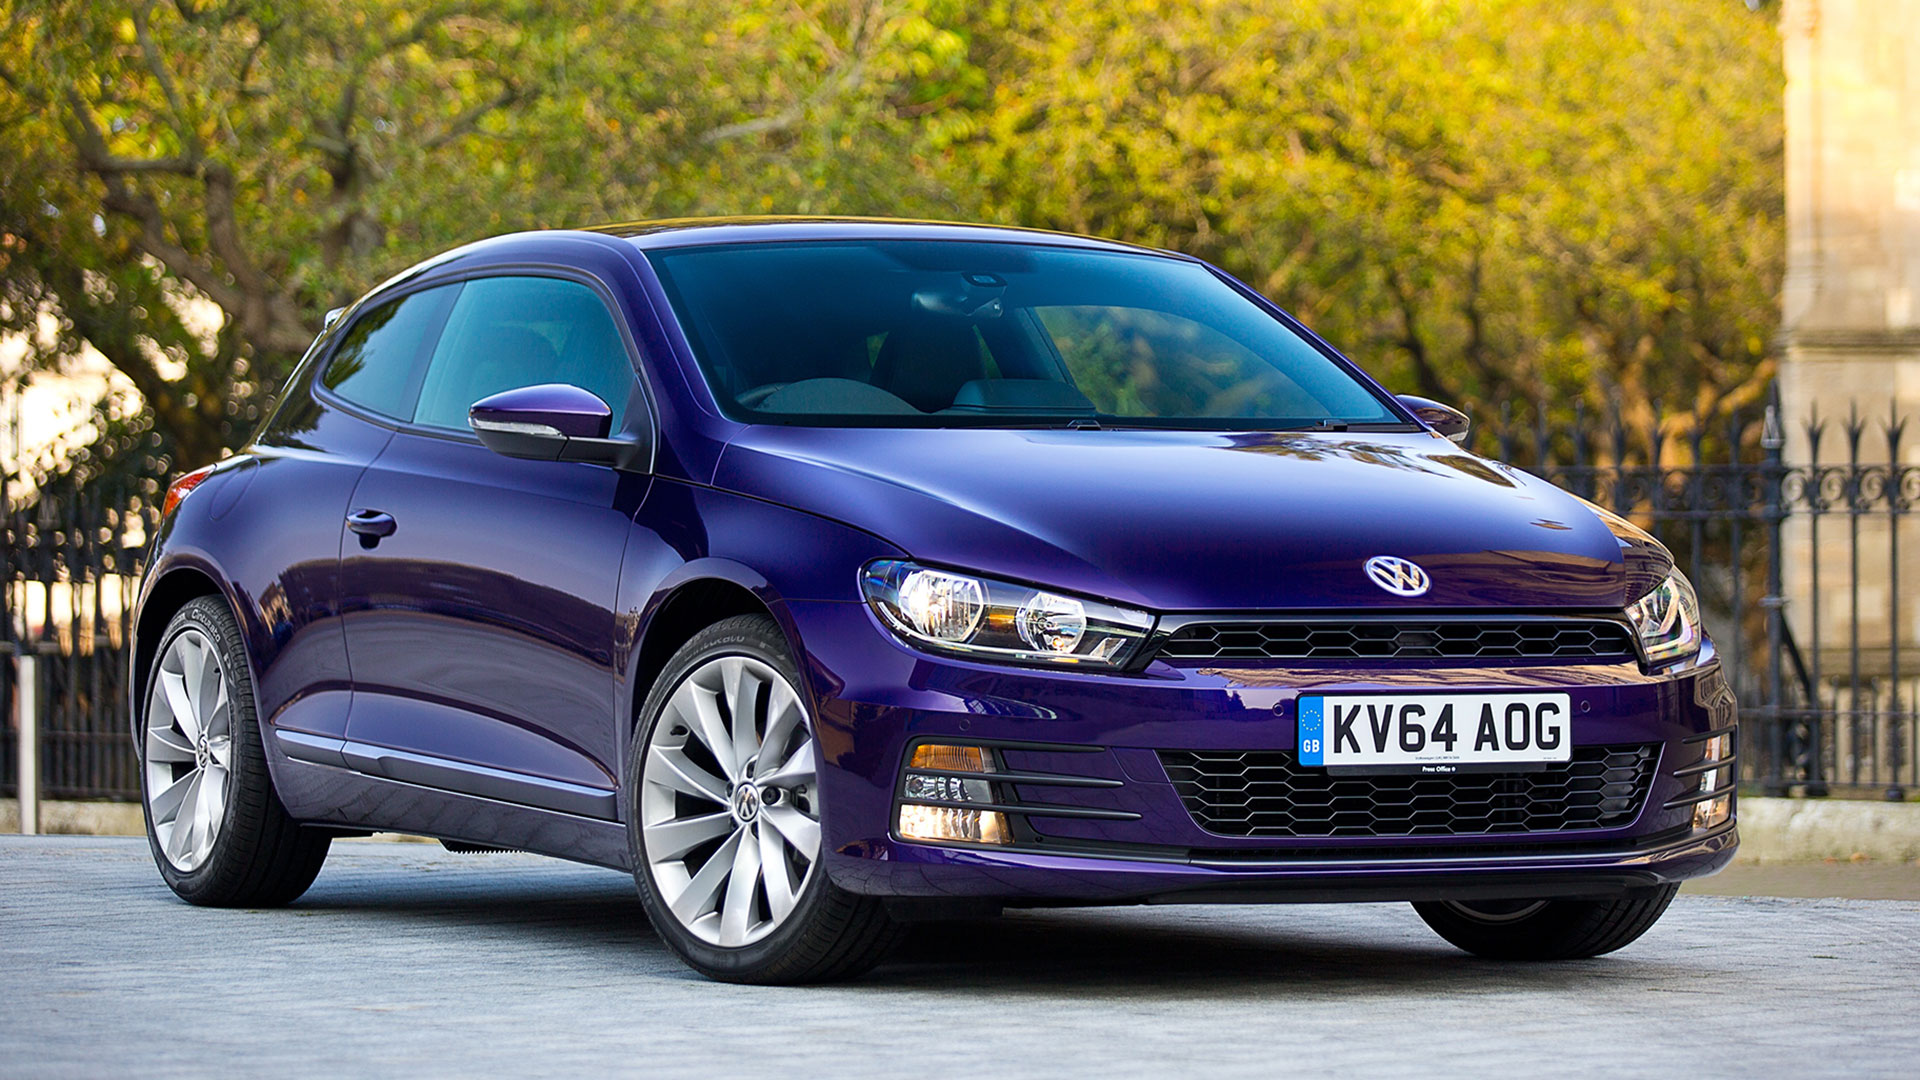 used volkswagen scirocco cars for sale on auto trader uk. Black Bedroom Furniture Sets. Home Design Ideas